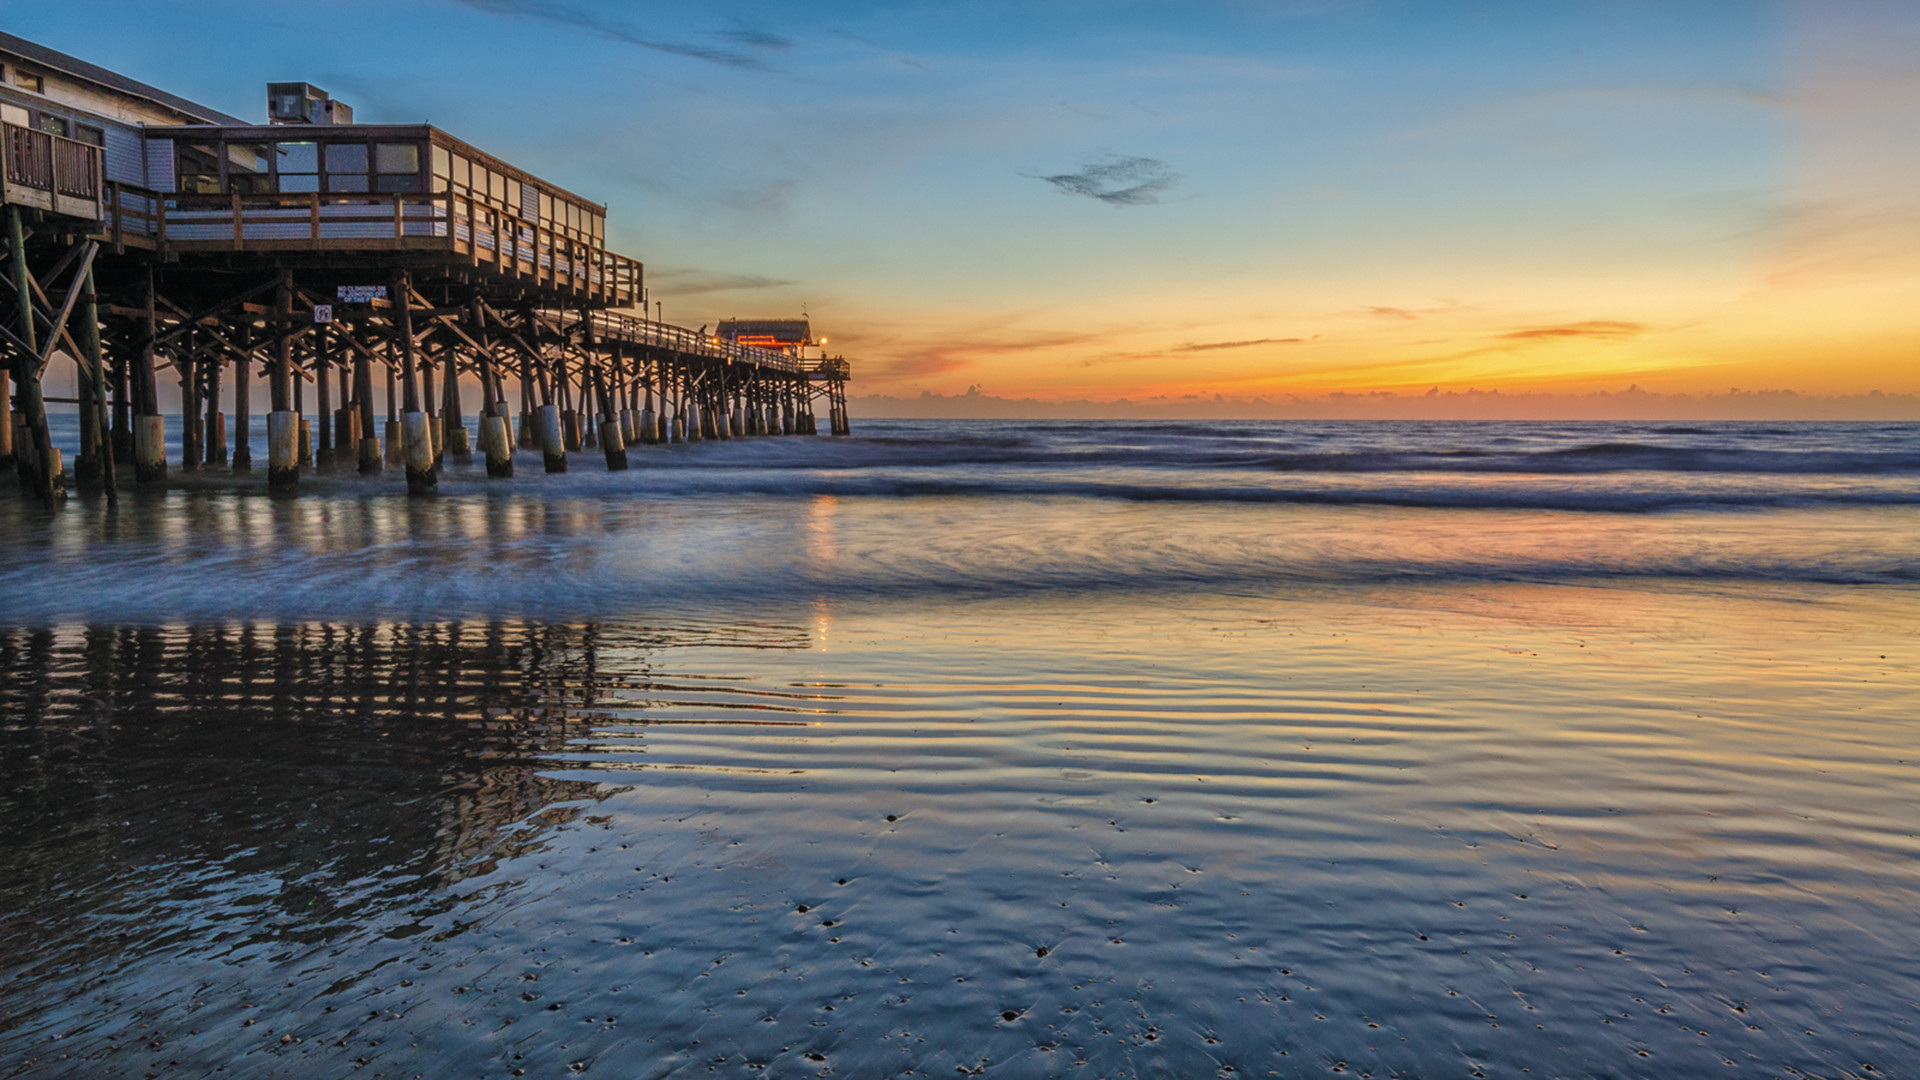 Enjoy a complimentary shuttle to and from the world-famous Cocoa Beach Pier when you stay at Westgate Cocoa Beach Resort